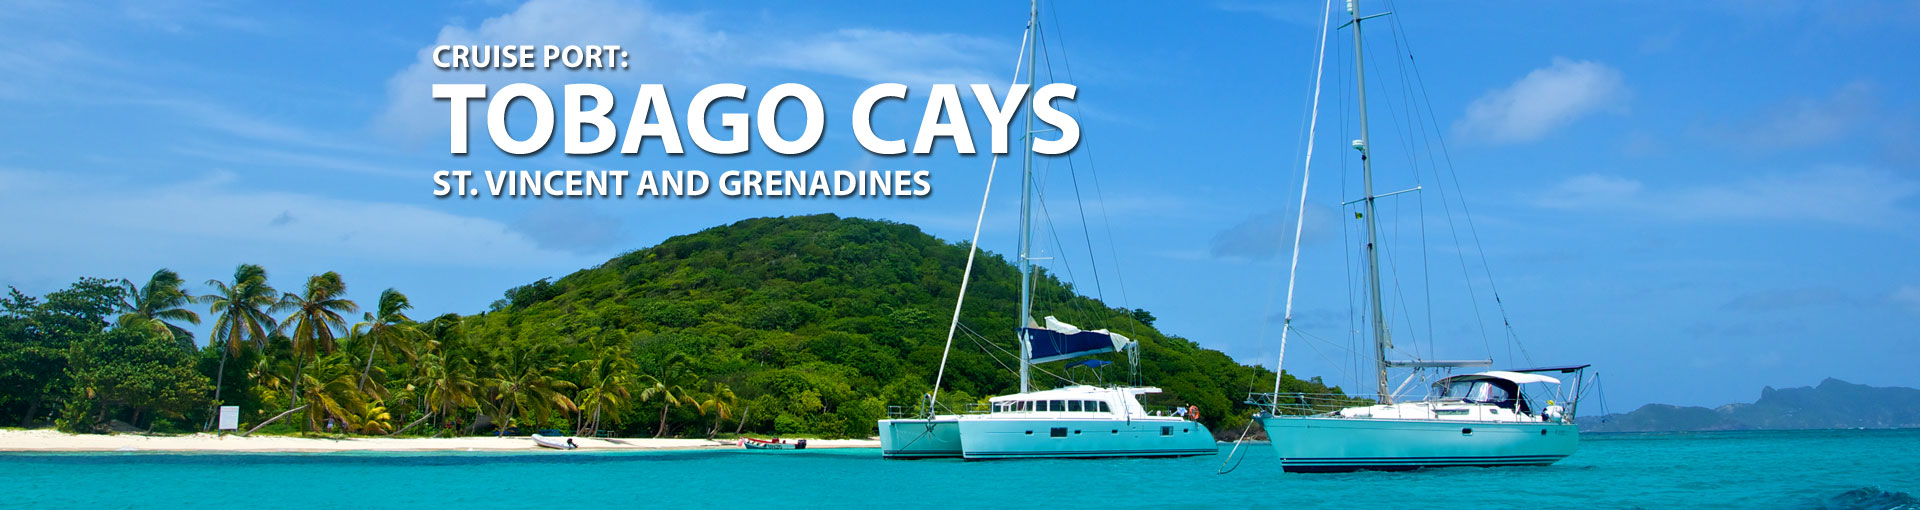 Cruises to Tobago Cays, St. Vincent And Grenadine